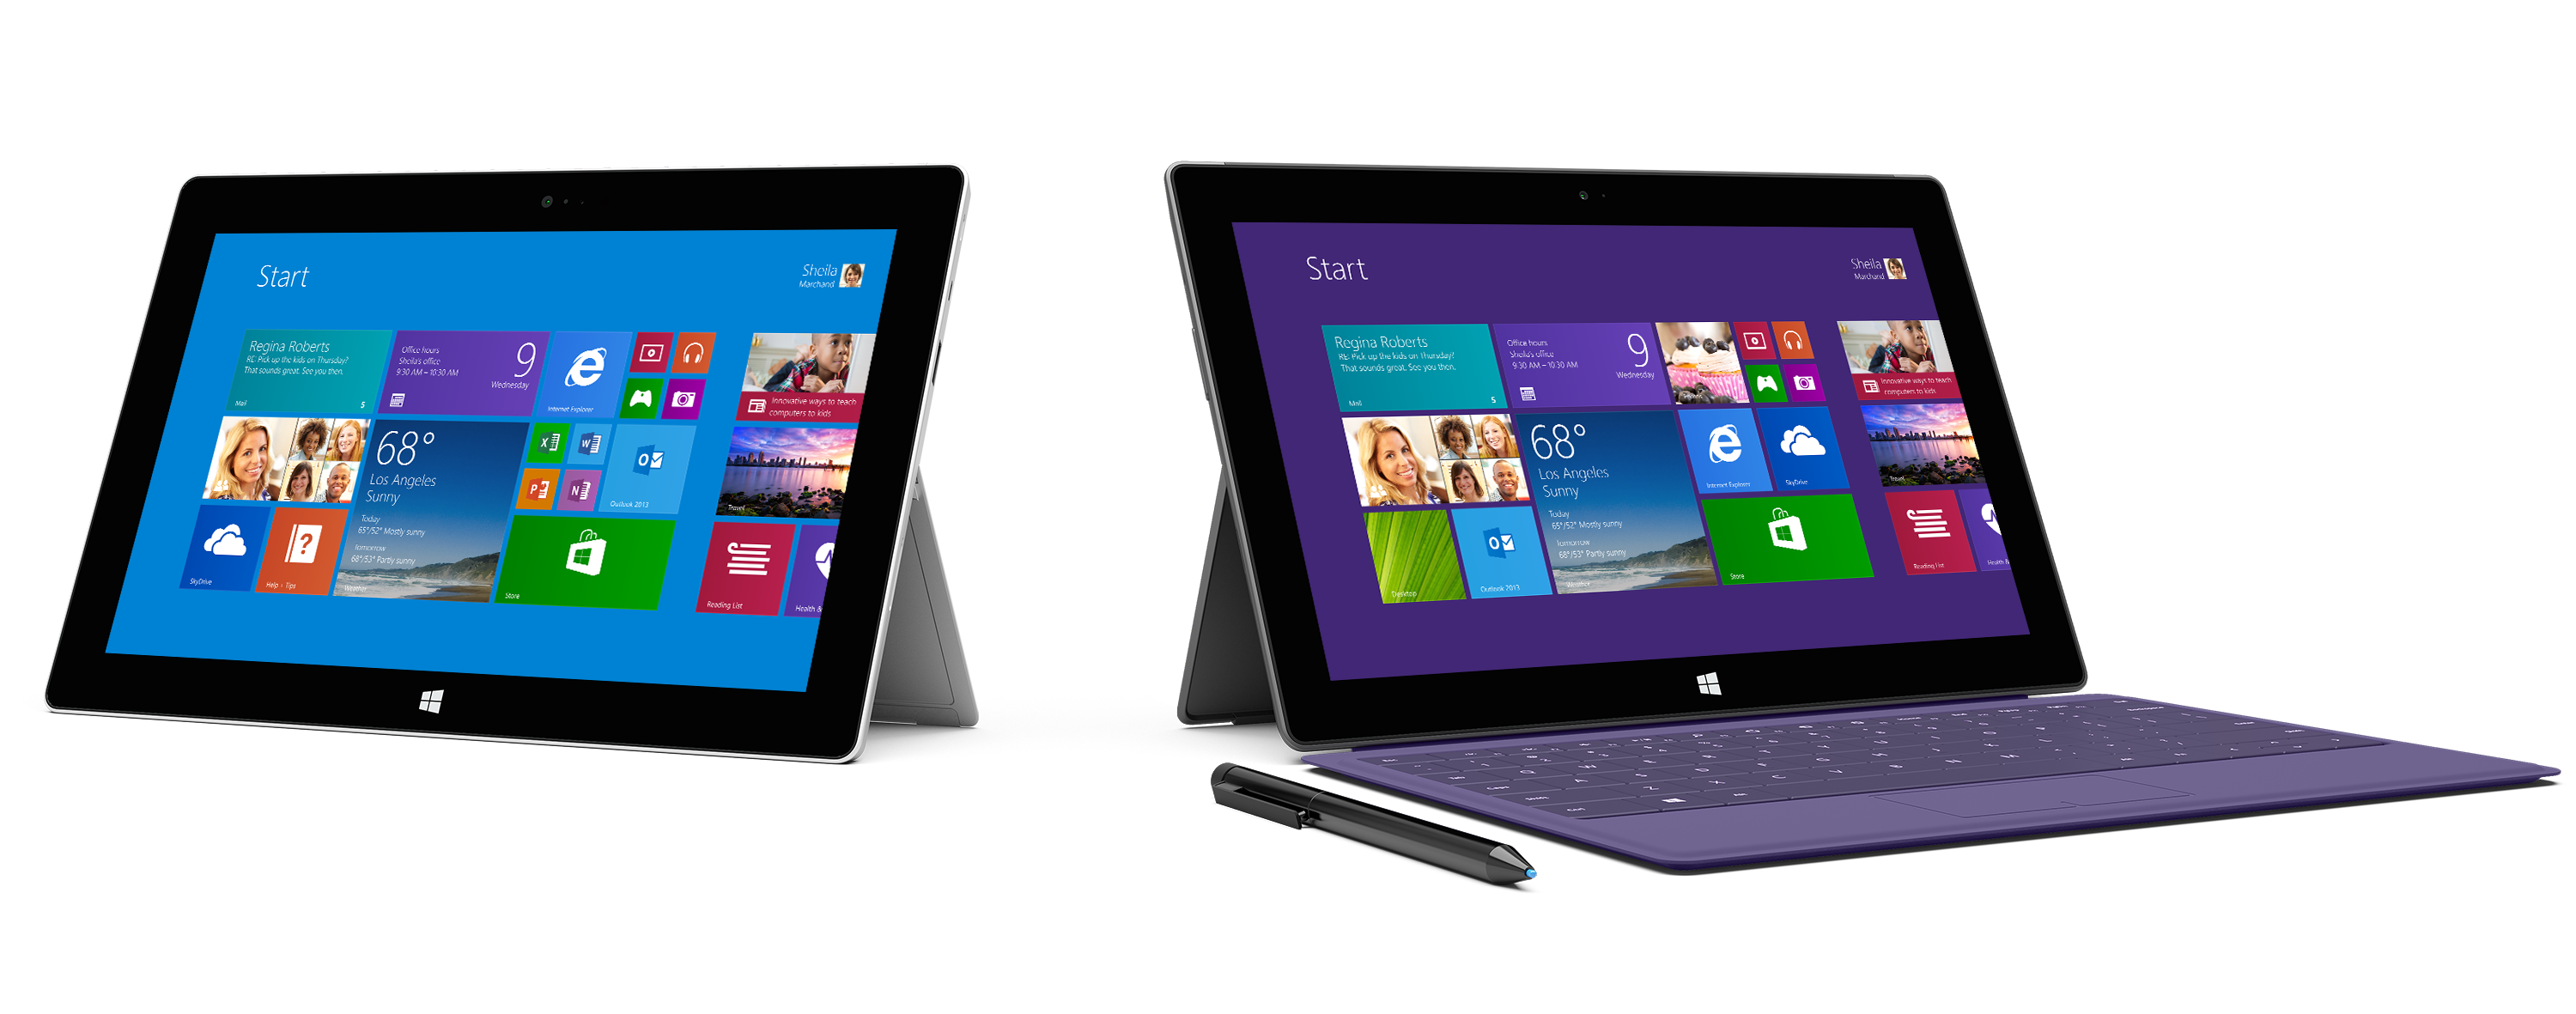 v2 Surface Family1 Surface 2 launch and Nokia buy: Microsoft is playing the smartphone and tablet long game